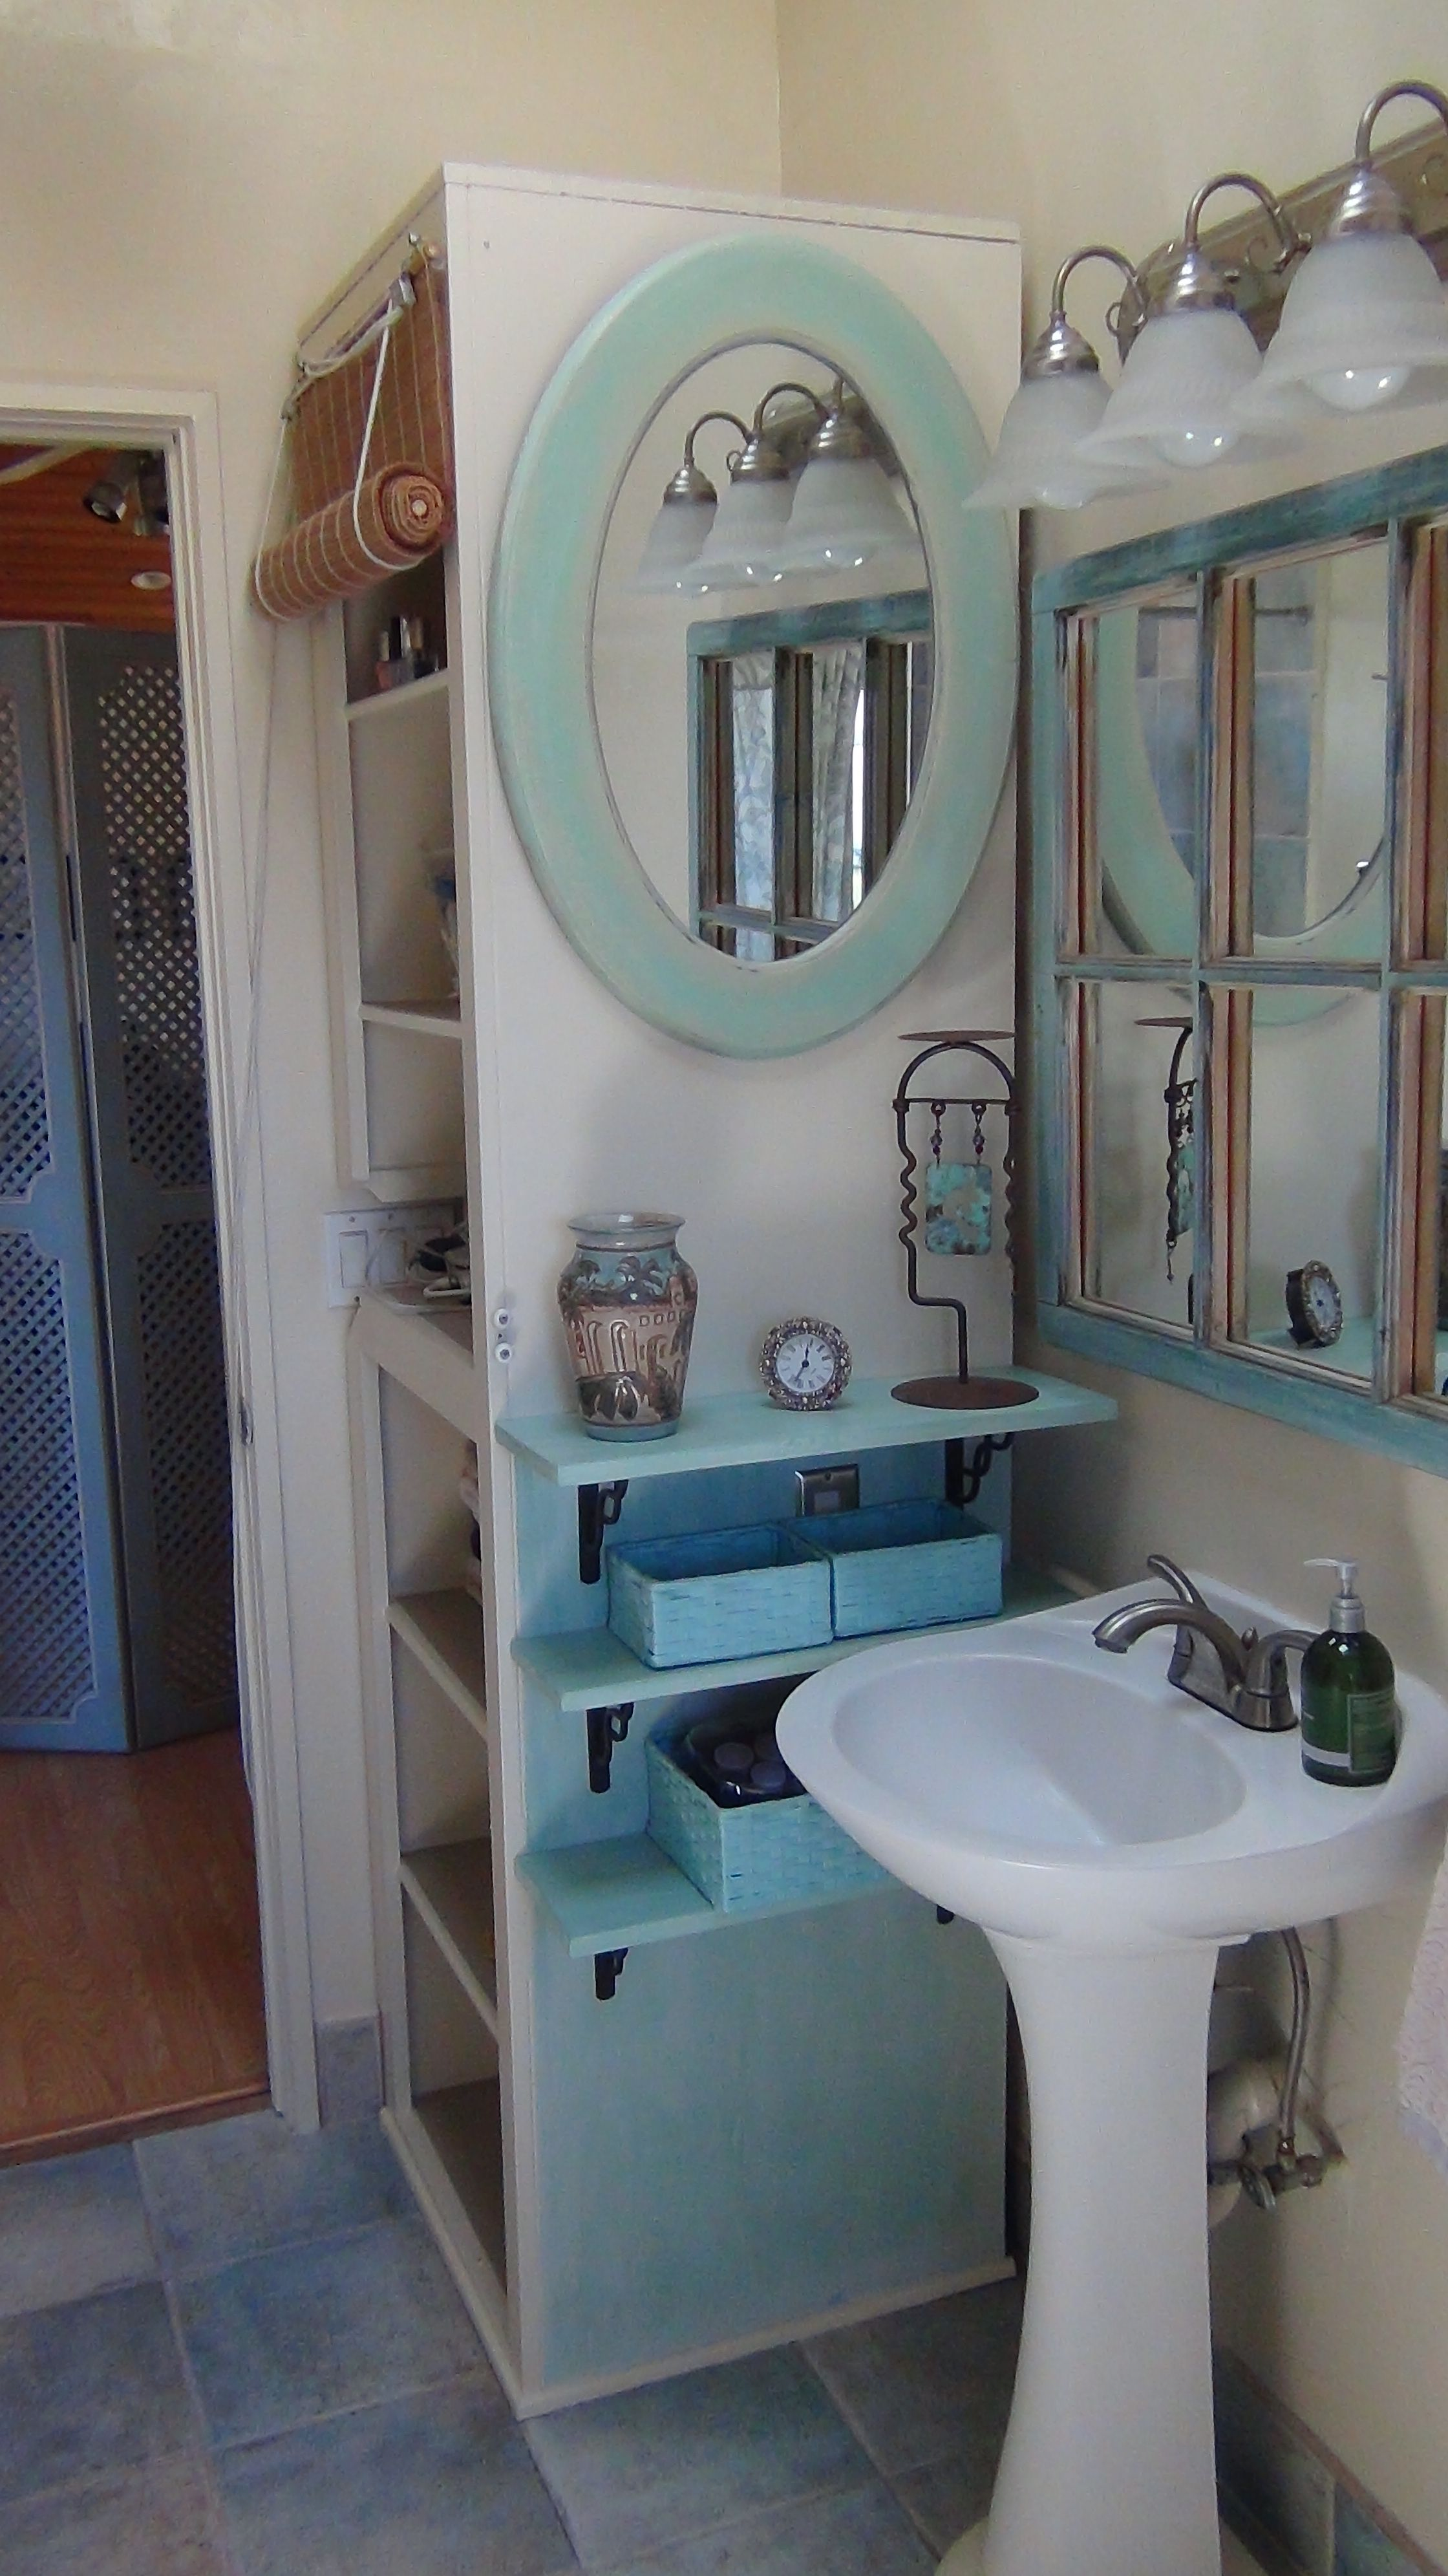 Organizing Tips For A Small Bathroom Small Bathroom Sinks Small Space Bathroom Small Bathroom